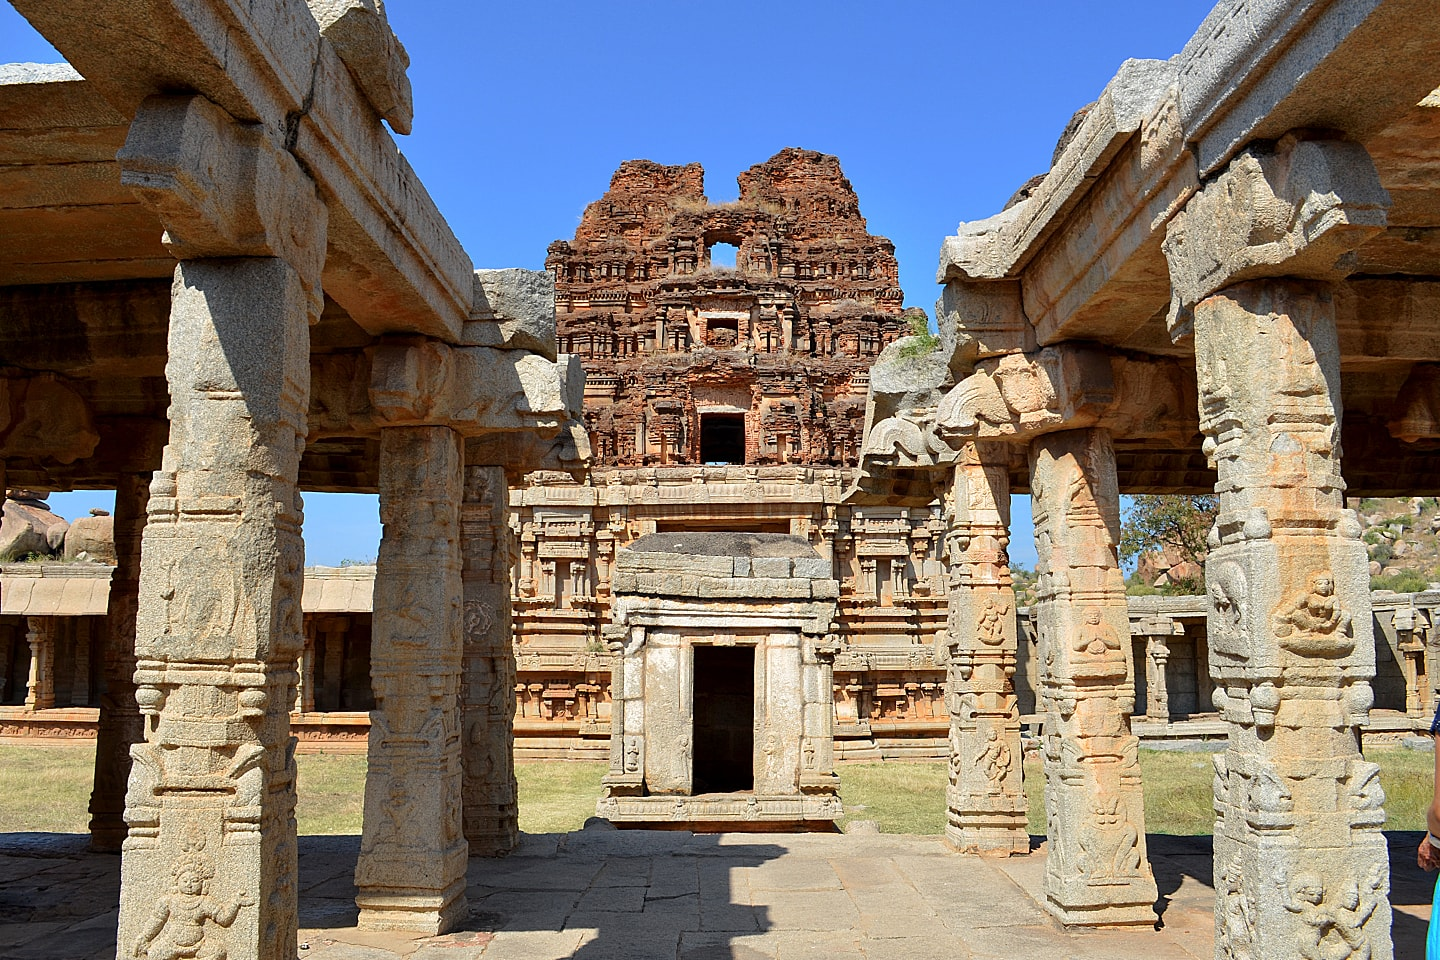 Temple Hampi India - Marine Larzilliere